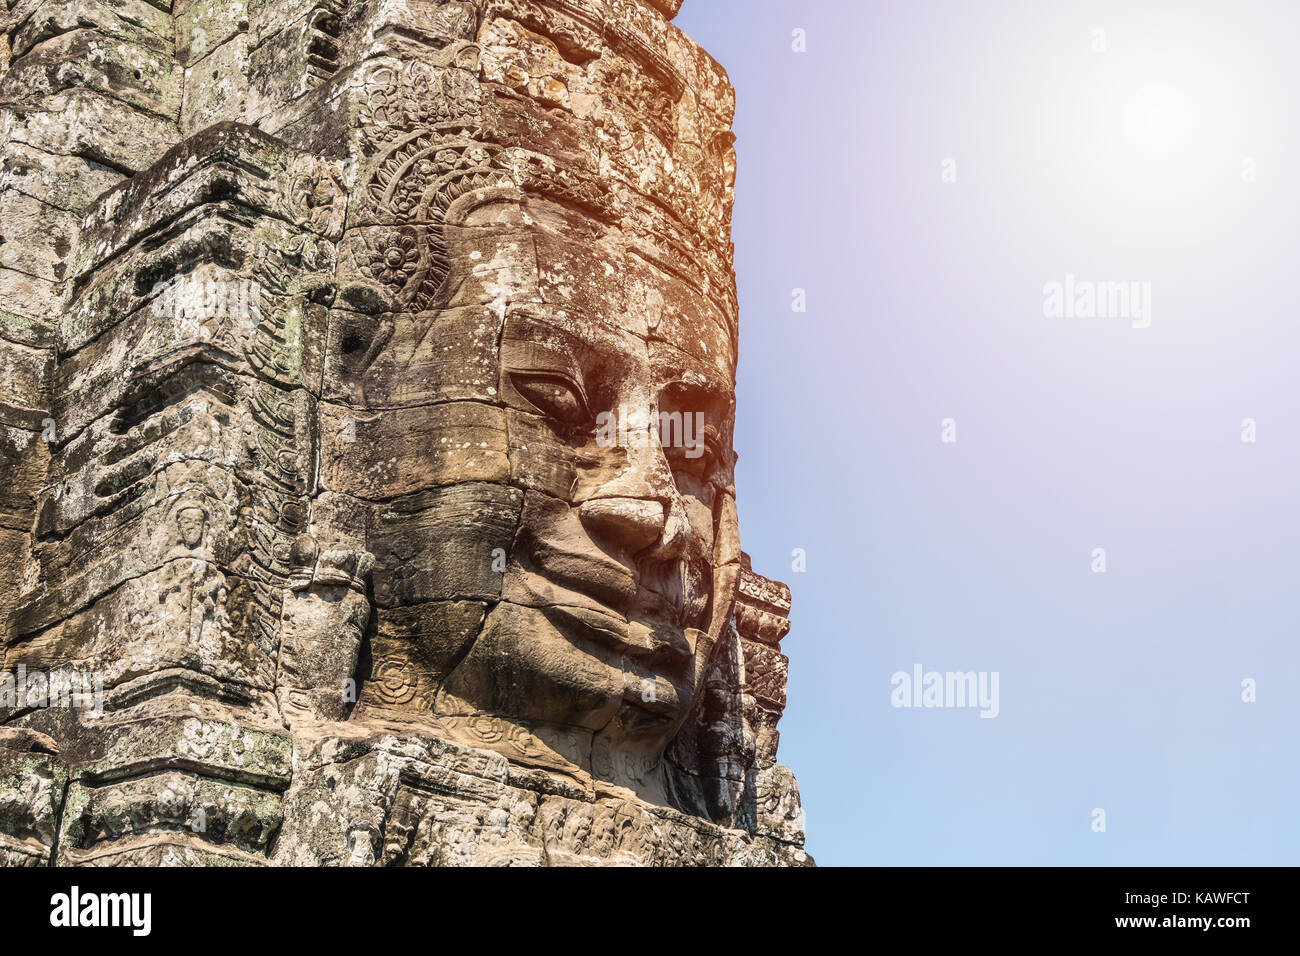 Smile face stone at bayon temple in angkor thom siem reap cambodia - Stock Image